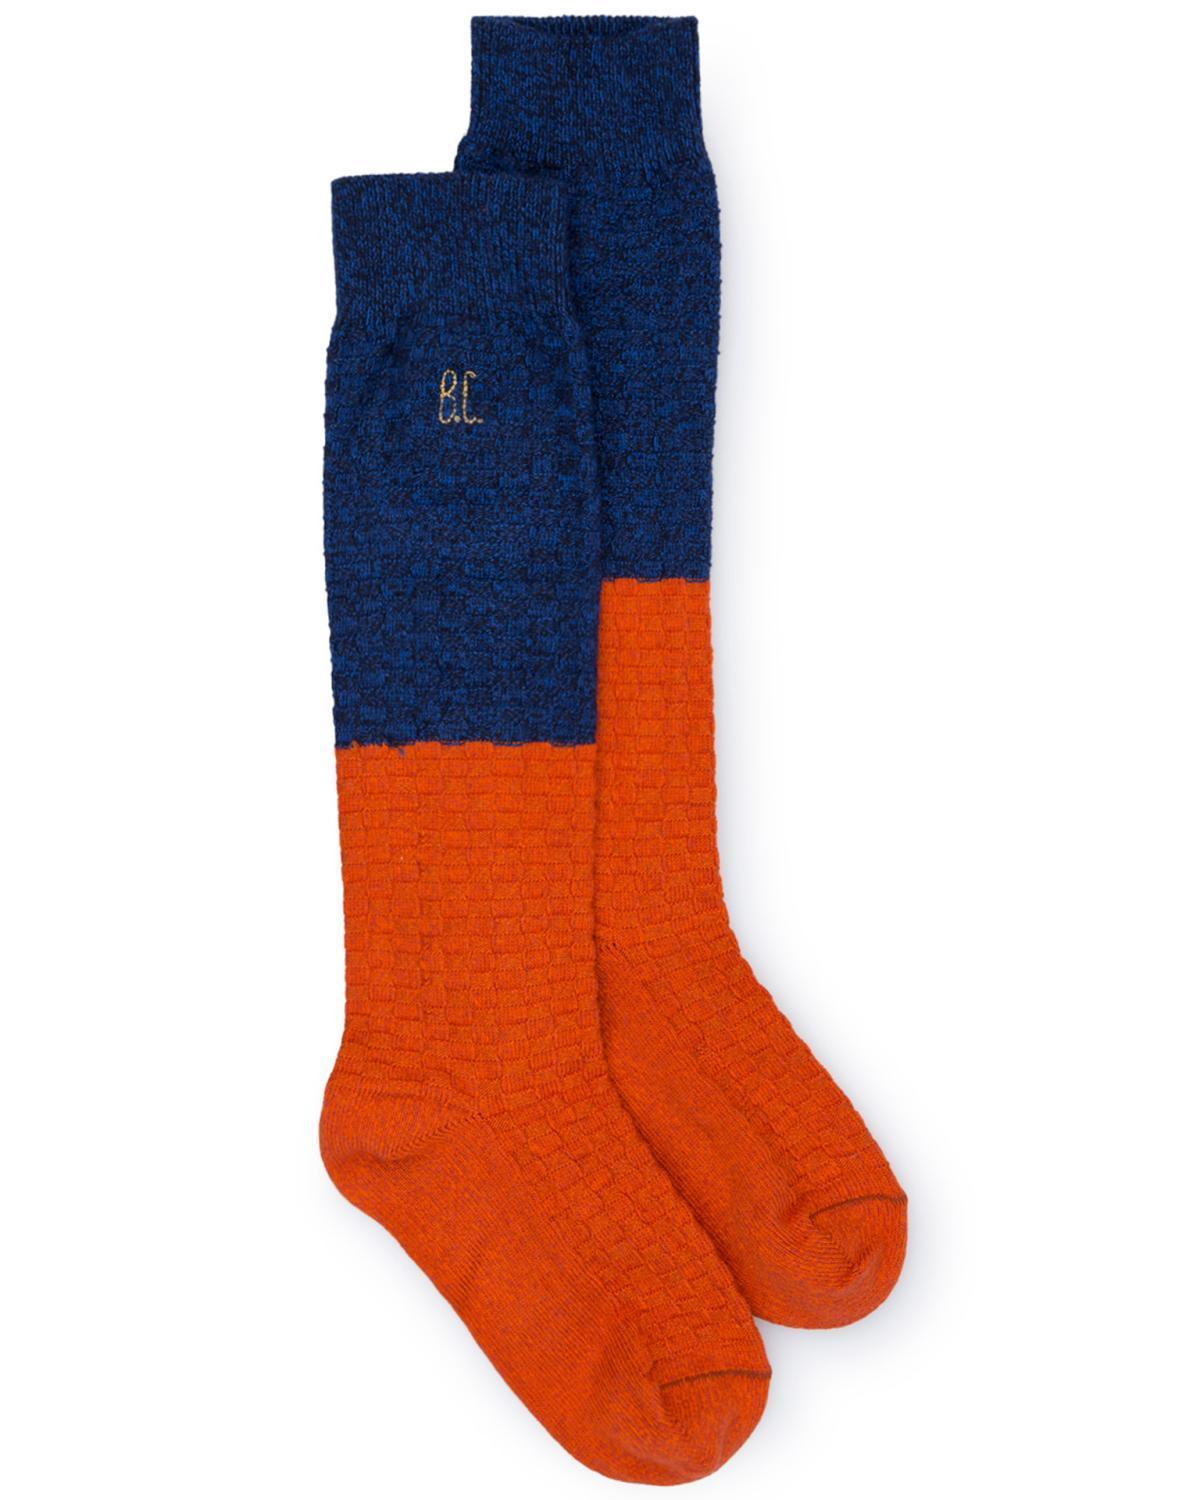 Little bobo choses accessories 16/18 blue + red long socks